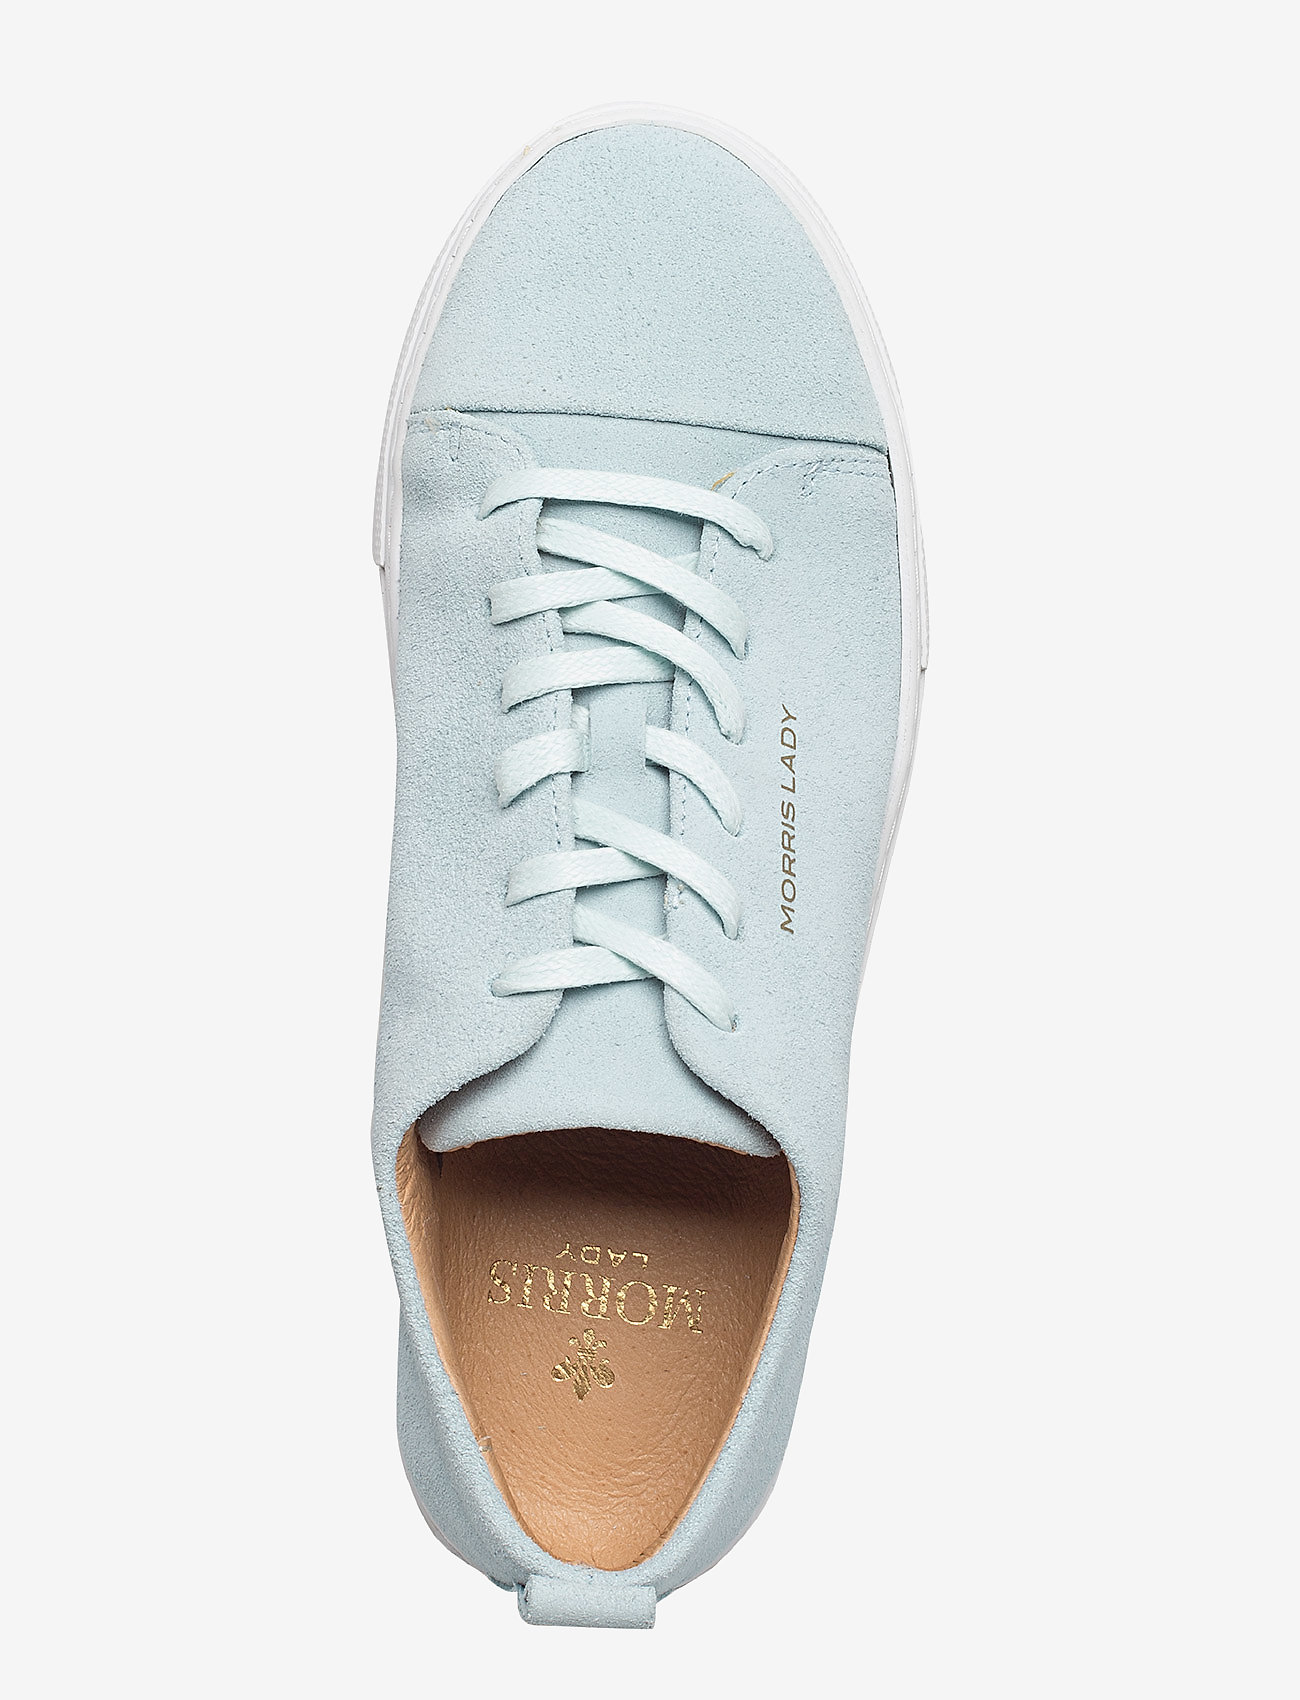 Morris Lady Suede Sneakers - Turquoise